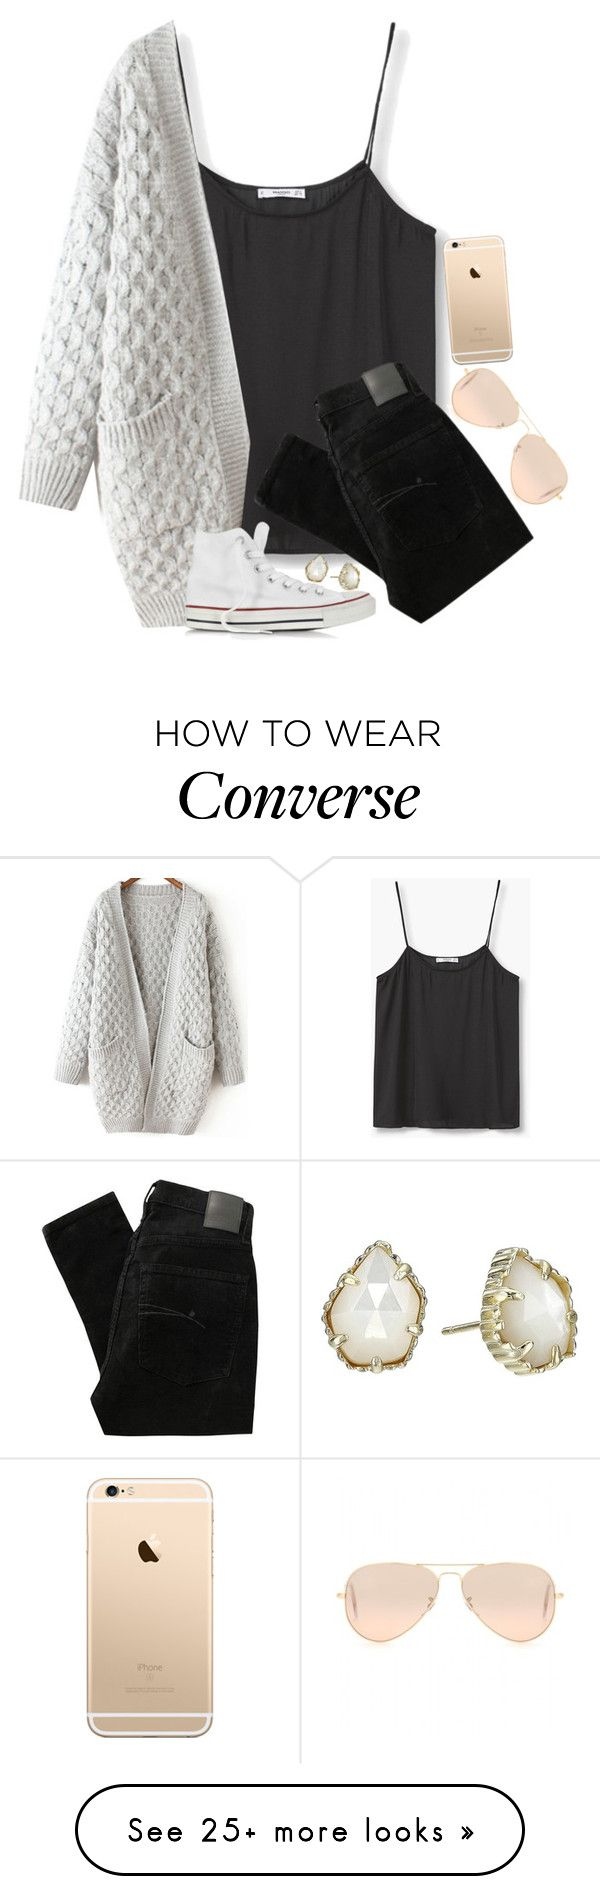 """Finally got these white converse"" by tinyblueowls on Polyvore featuring MANGO, Nobody Denim, Converse, Ray-Ban and Kendra Scott"